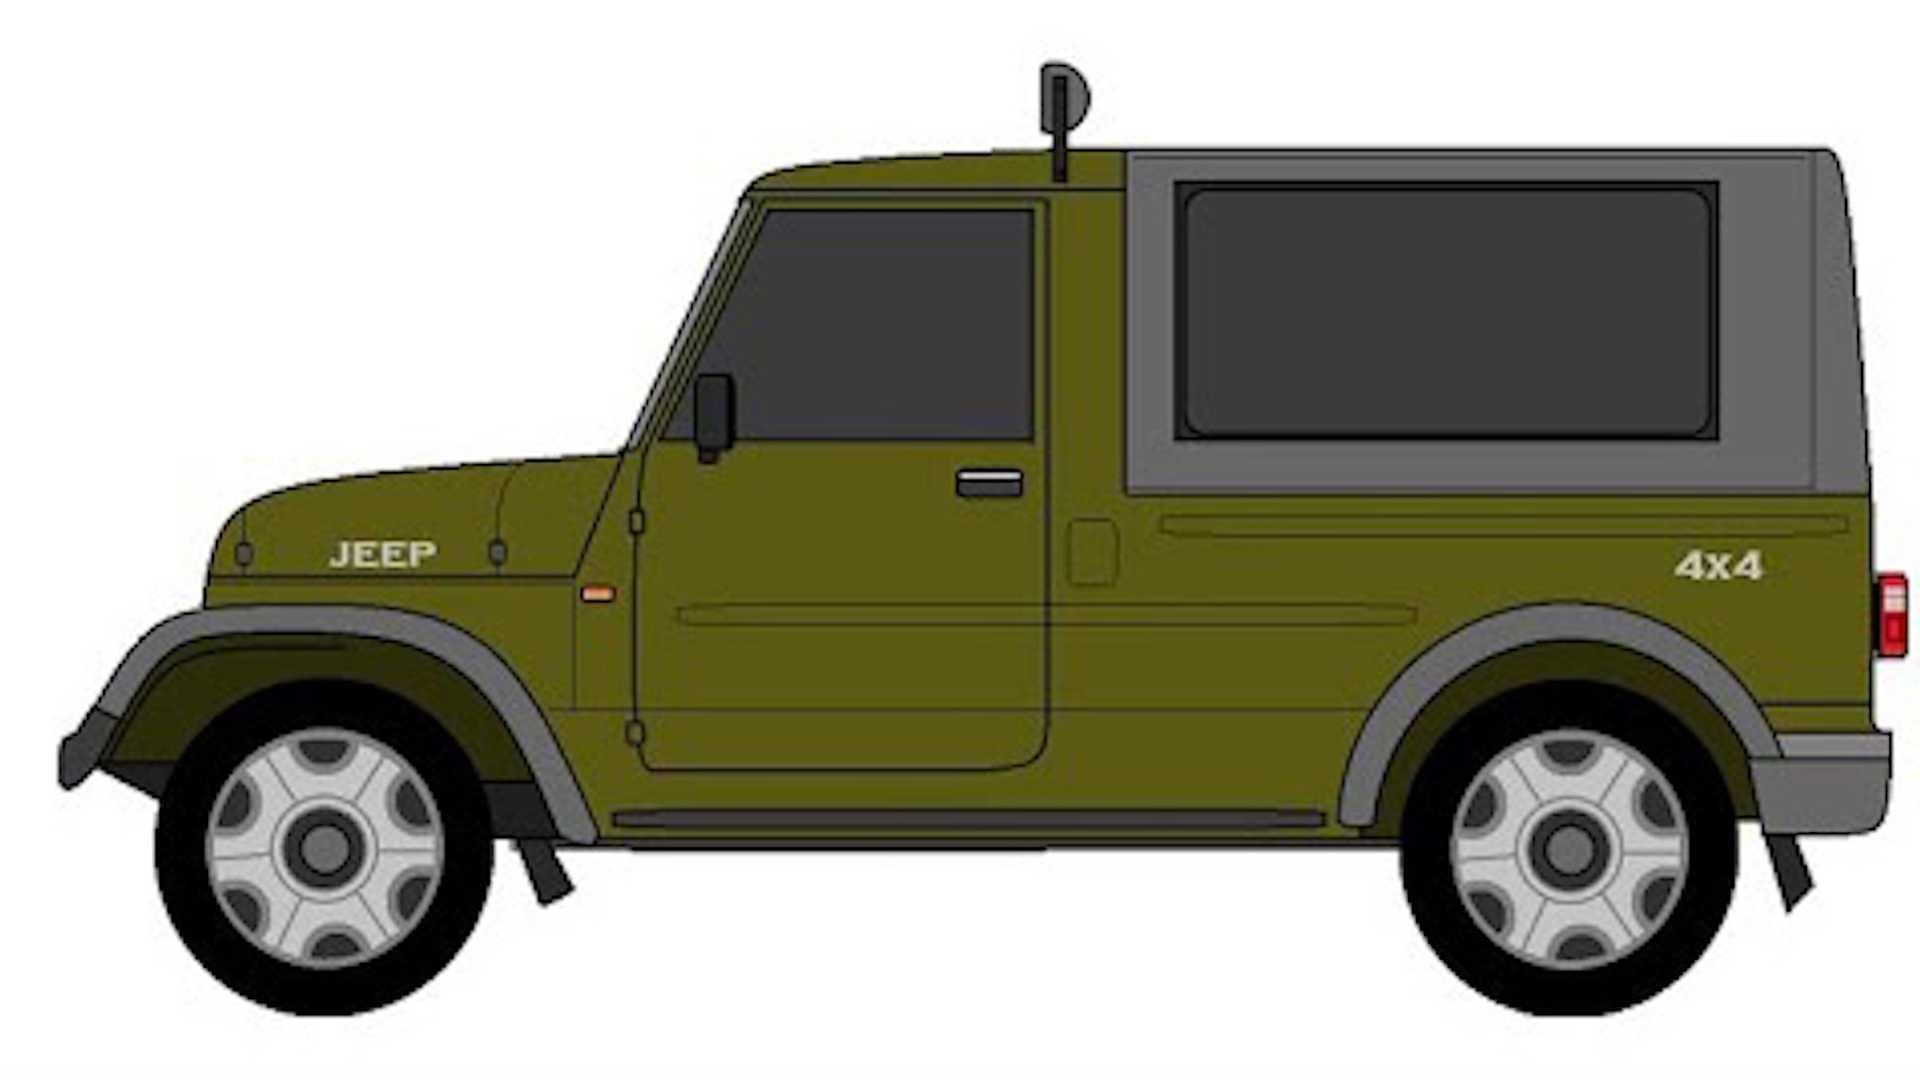 beingnandish-s-cars-drawn-in-microsoft-paintss